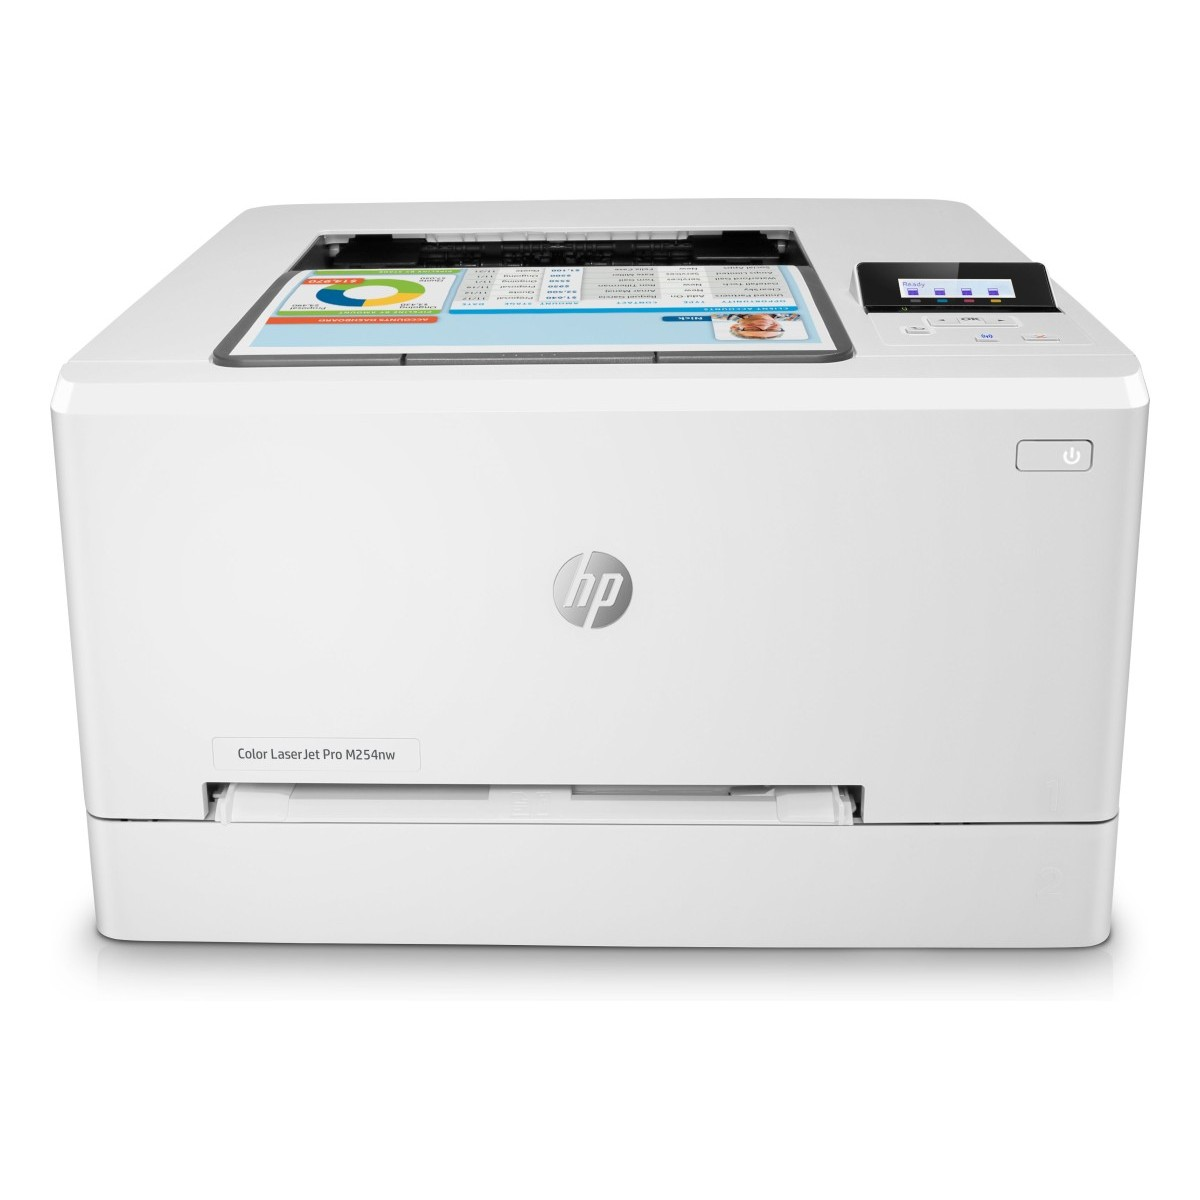 HP Color LaserJet Pro M254nw (A4,21/21 ppm, USB 2.0, Ethernet, Wifi)